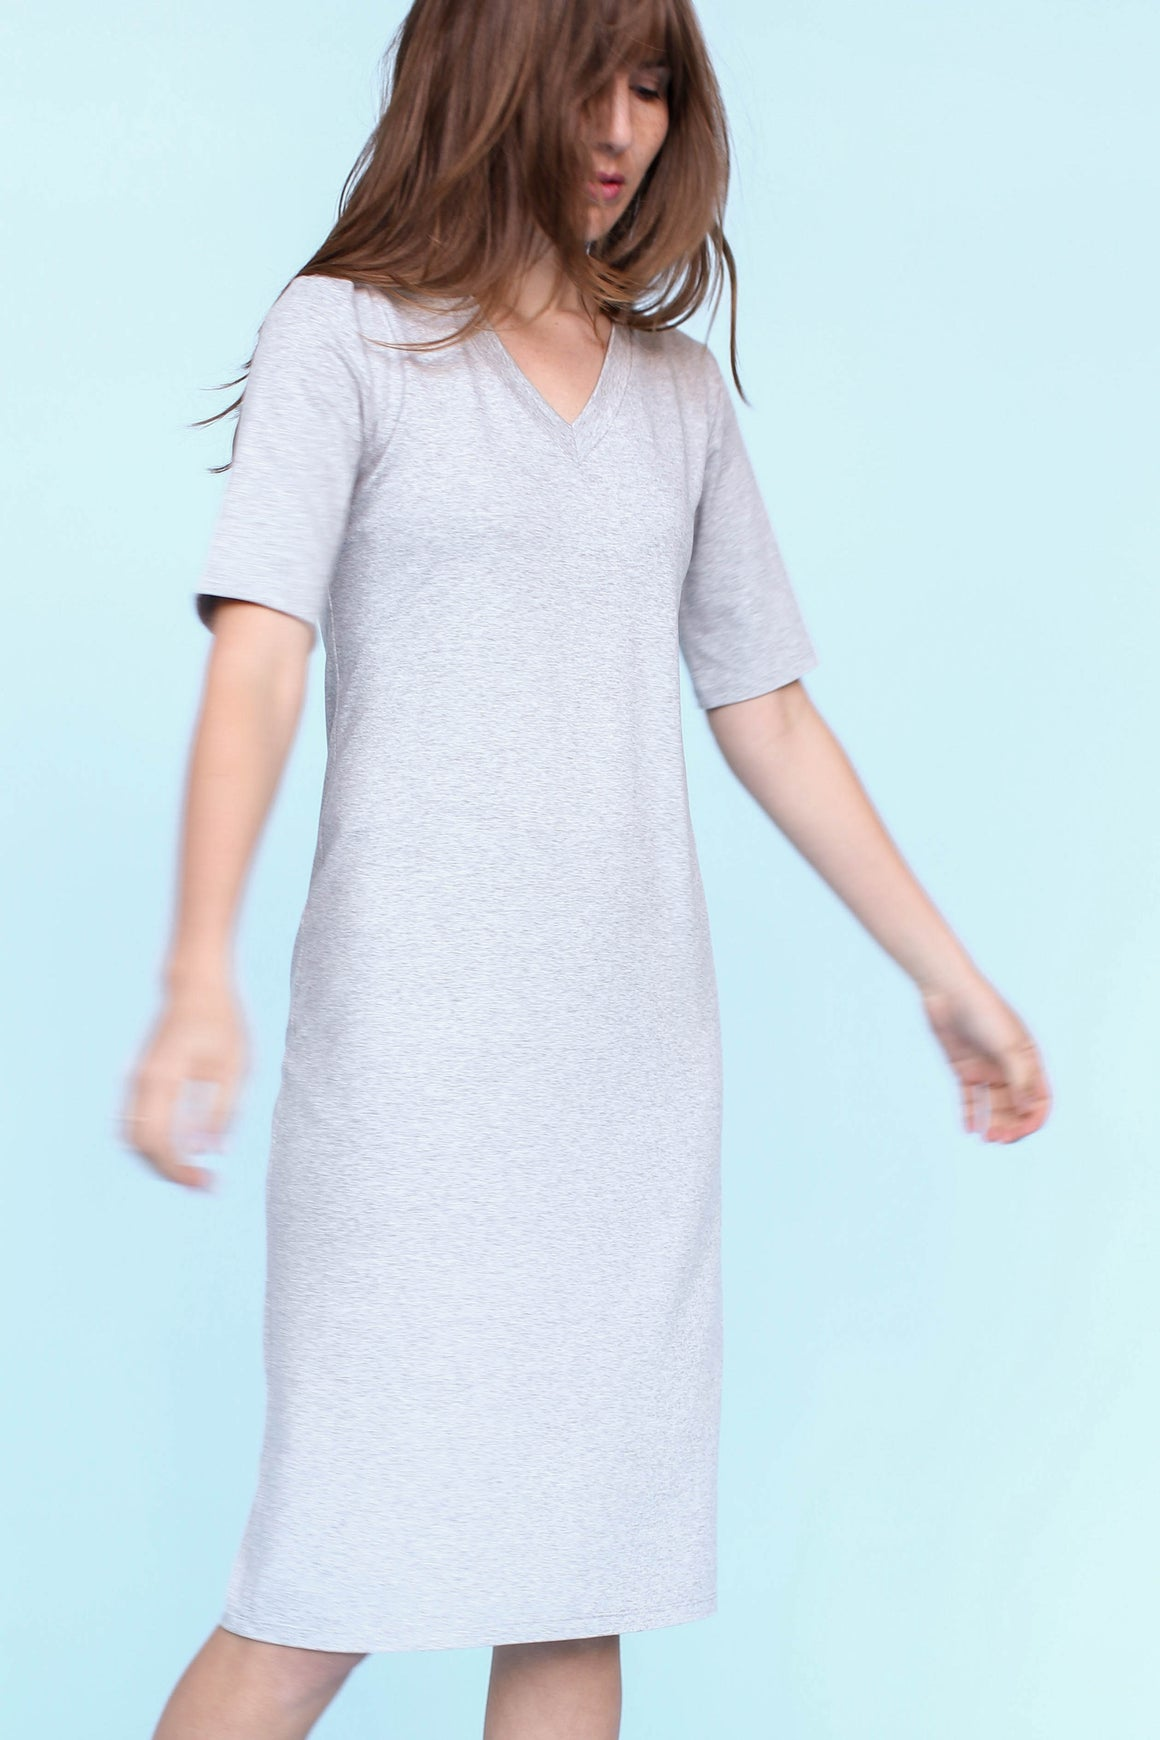 Sonnet James - NORI - GREY - Dress